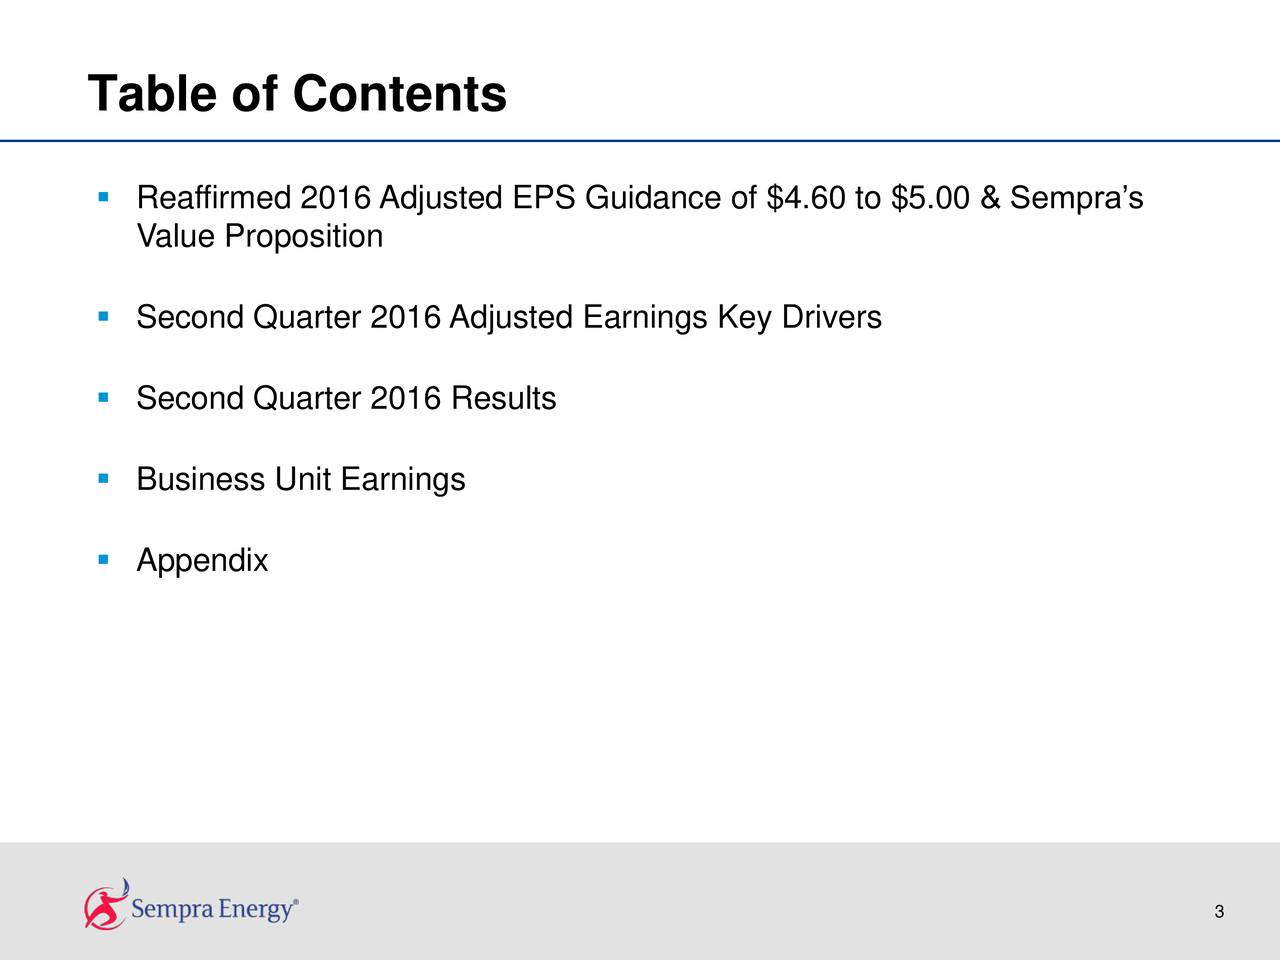 Reaffirmed 2016 Adjusted EPS Guidance of $4.60 to $5.00 & Sempras Value Proposition Second Quarter 2016 Adjusted Earnings Key Drivers Second Quarter 2016 Results Business Unit Earnings Appendix 3